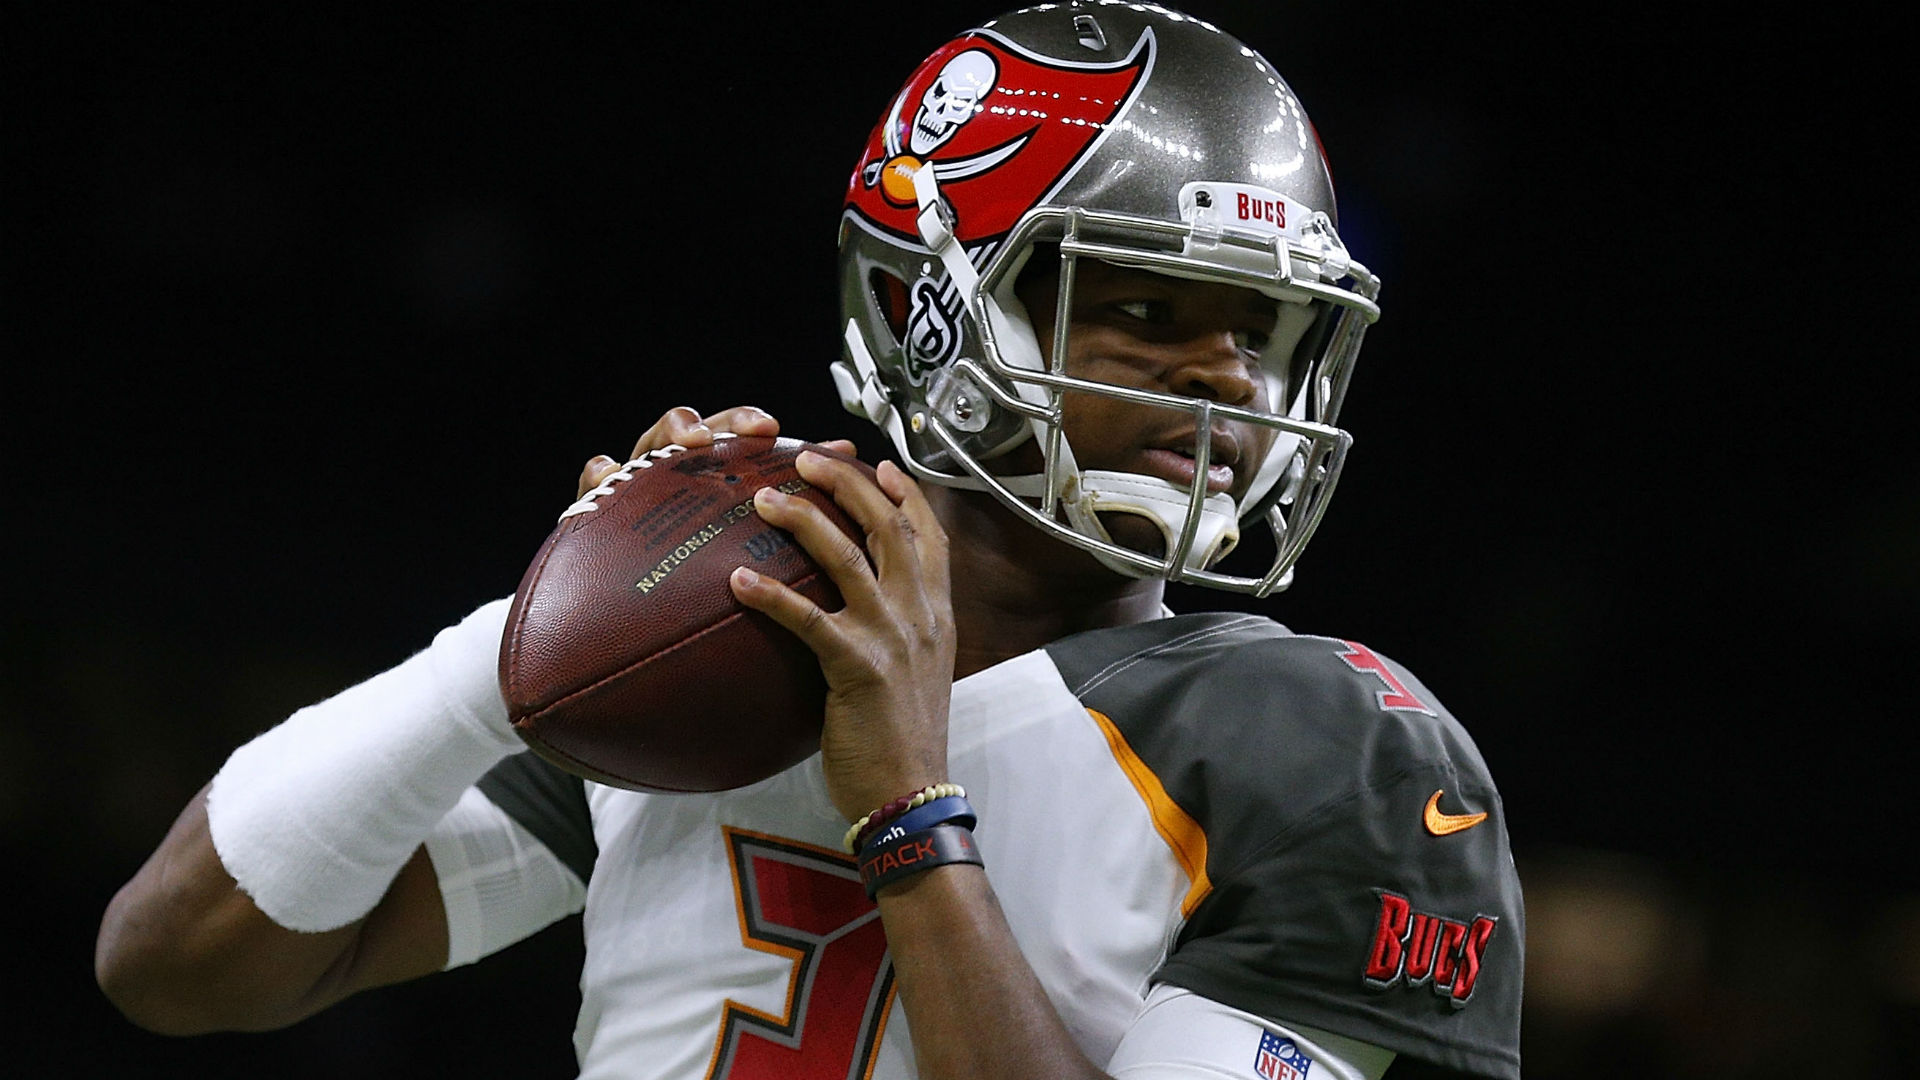 Bucs' QB Winston Out At Least 2 Weeks With Shoulder Injury